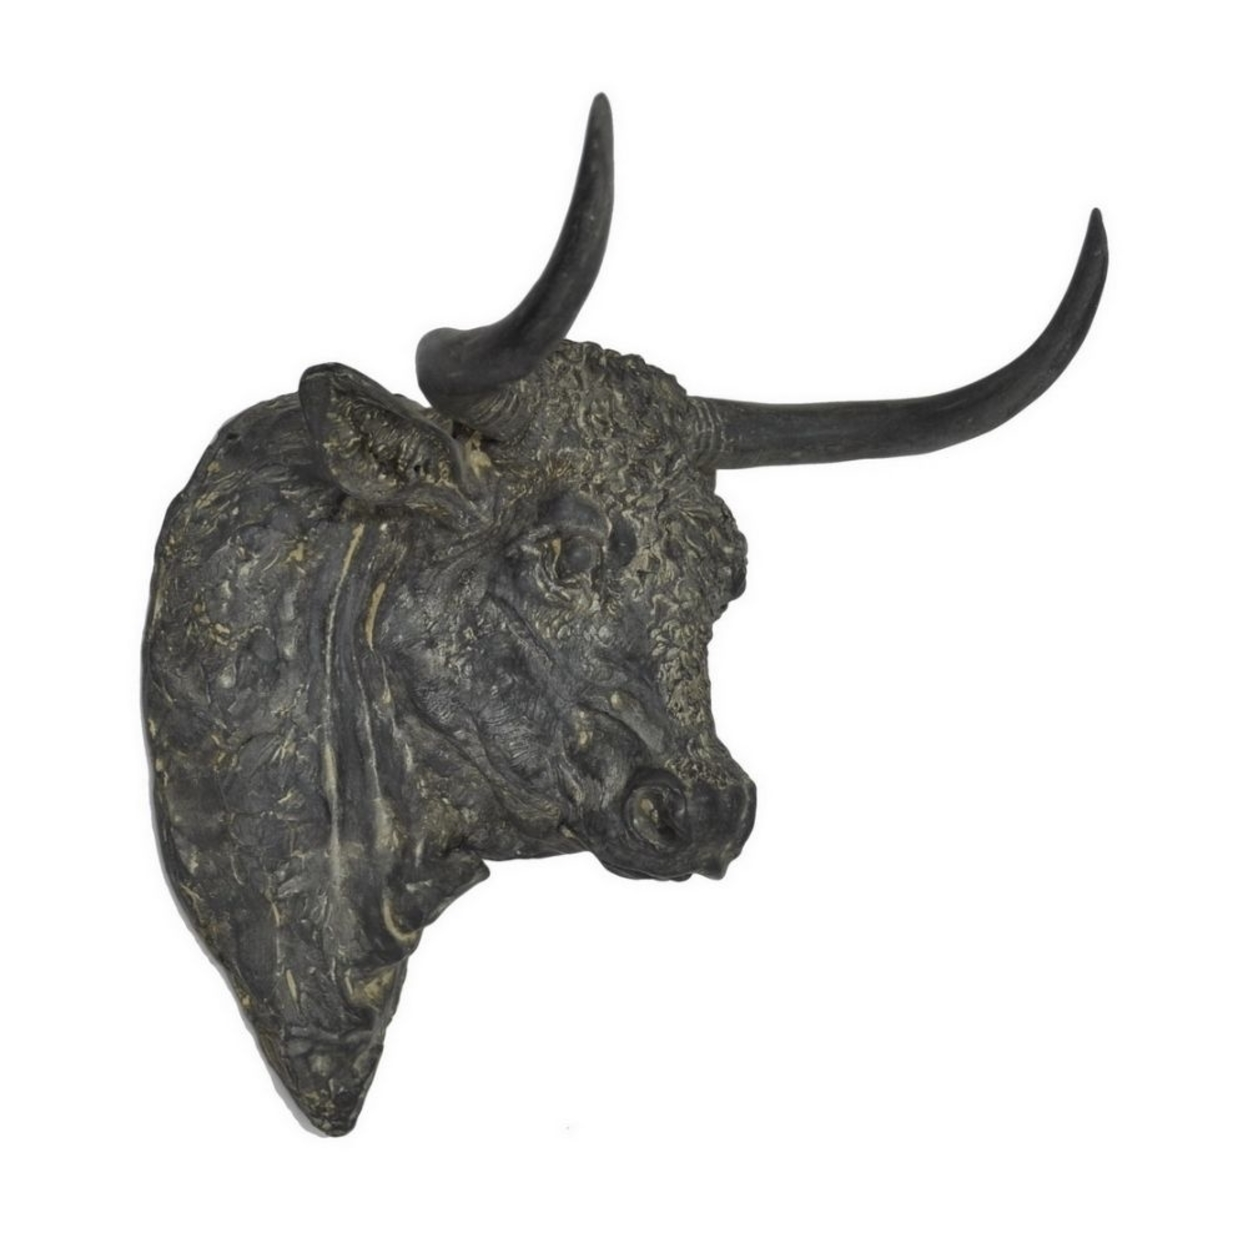 Benzara 34480 Resin Bull Head Wall Decor Rust, Gray 59ccb991e224612cf66f9a8e